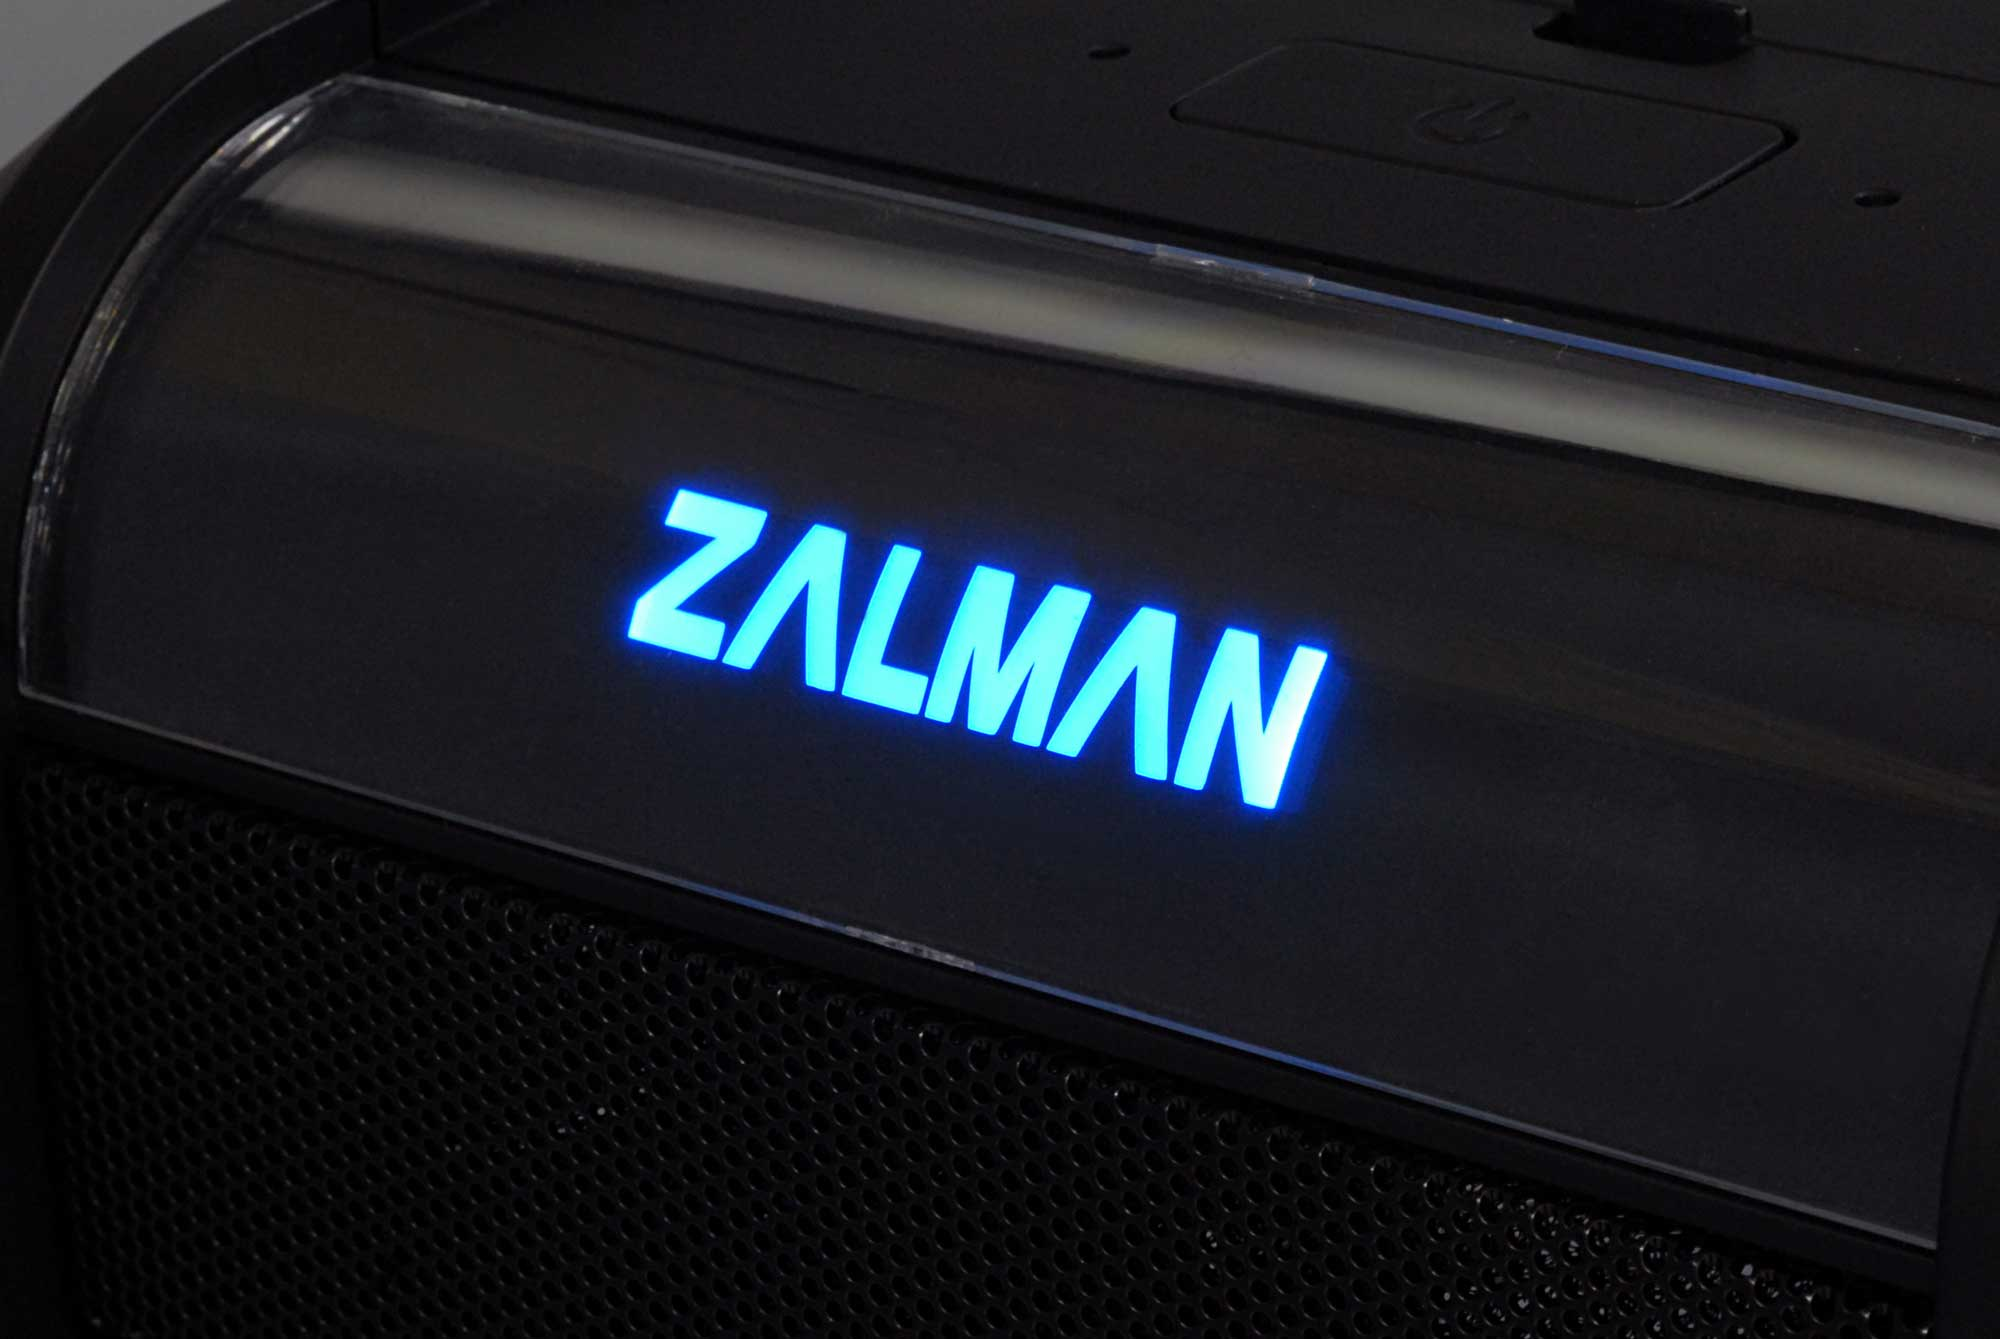 Zalman Z7 Atx Mid Tower Pc Cases